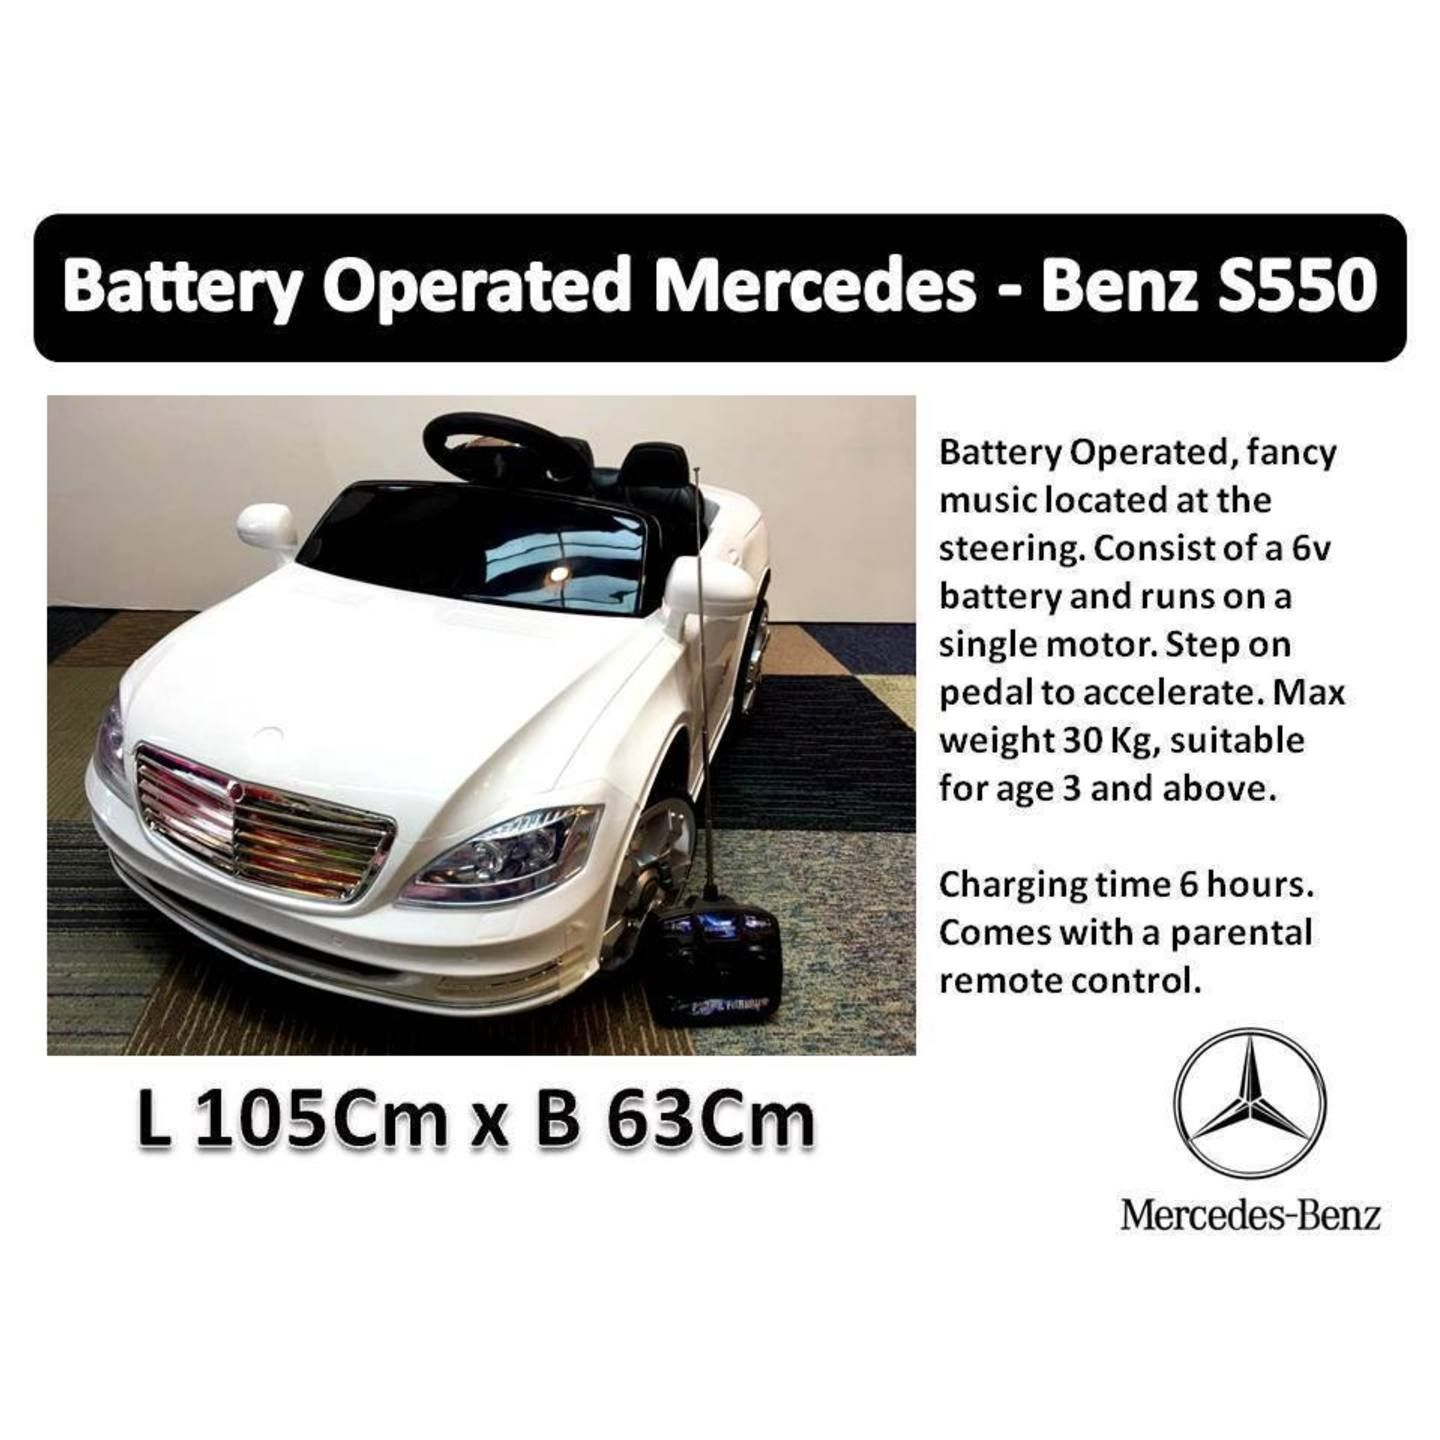 Battery operated benz s550 benz s550 s550 battery operated